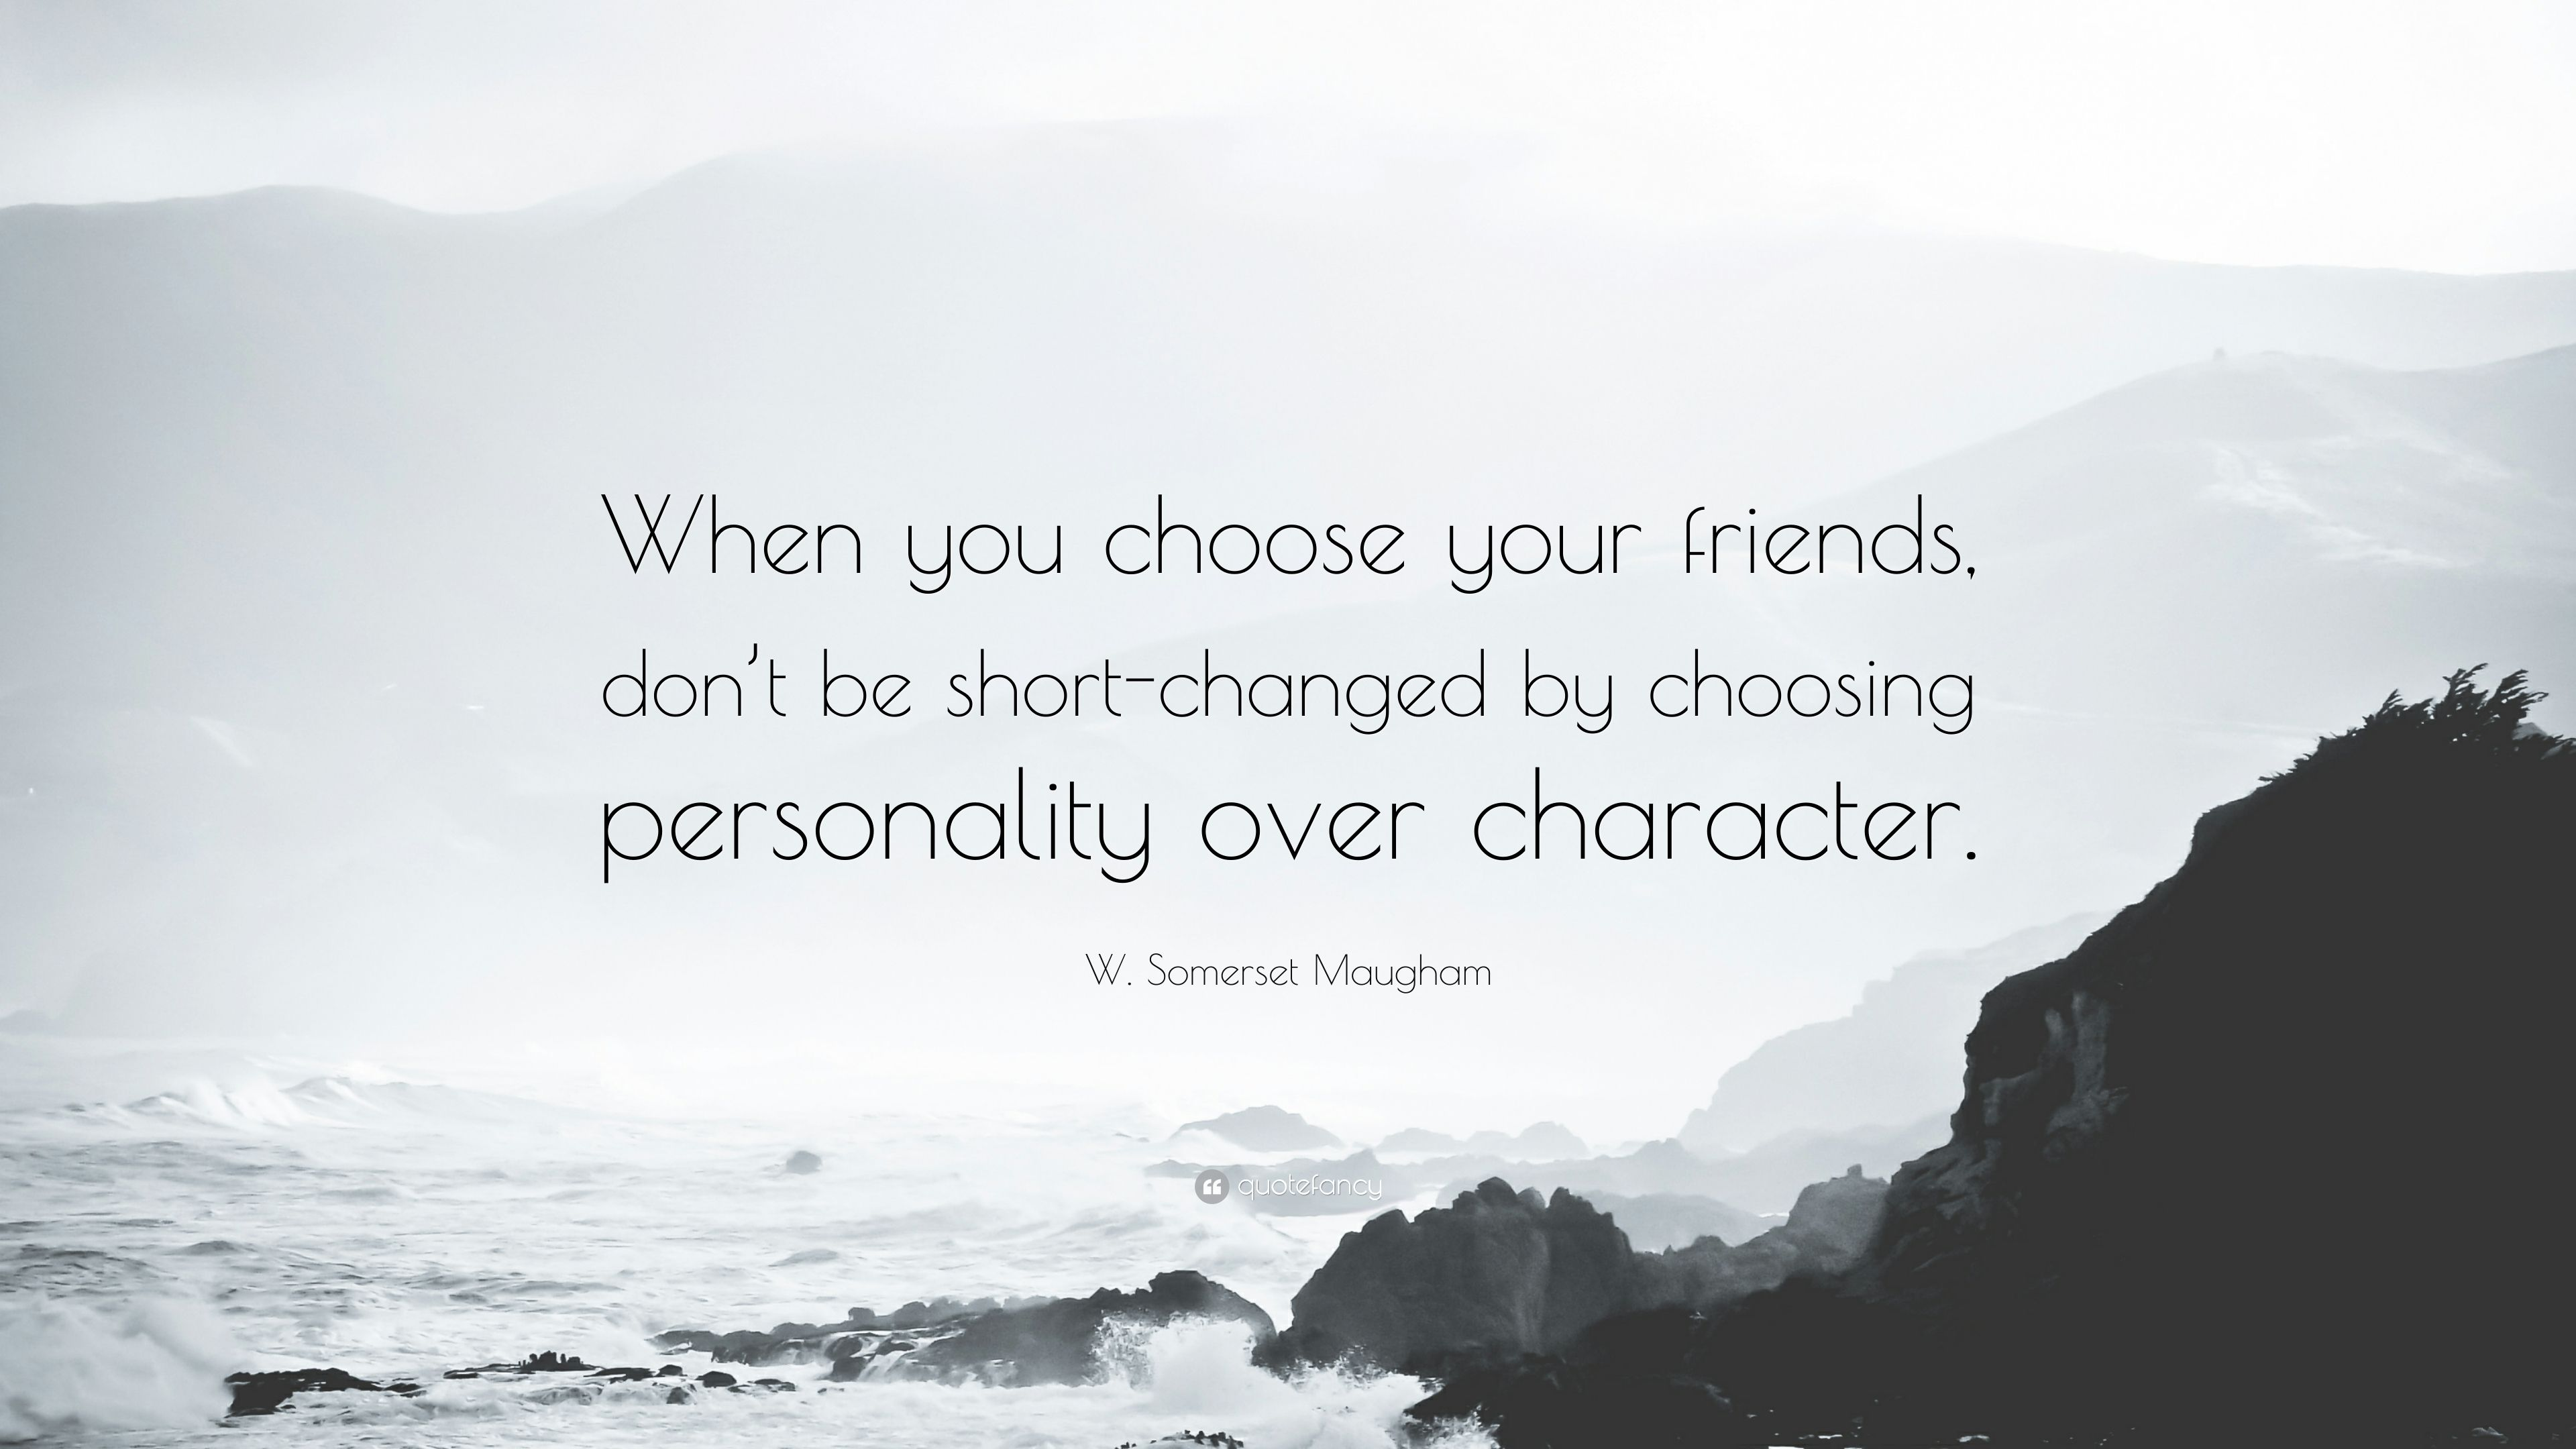 W. Somerset Maugham Quote: When you choose your friends